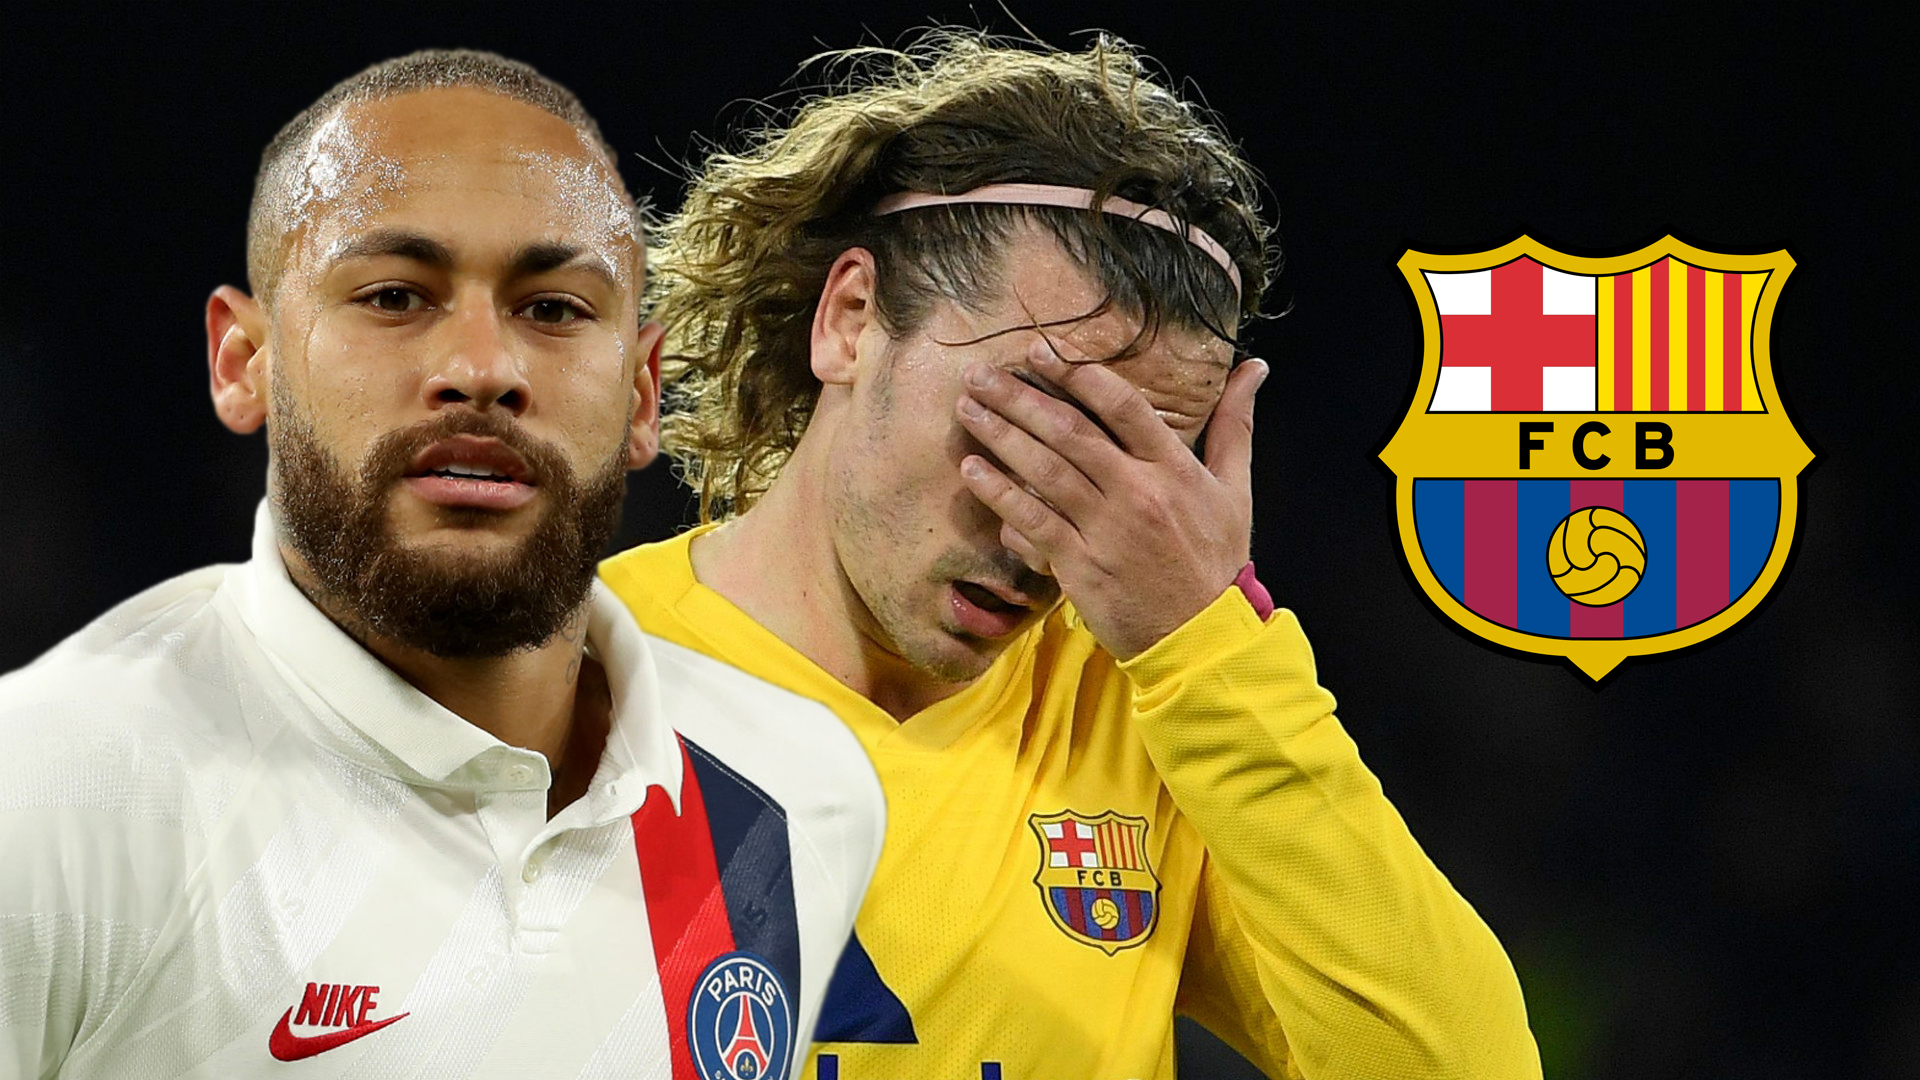 Transfer news and rumours LIVE: Barca hoping to swap Griezmann for Neymar